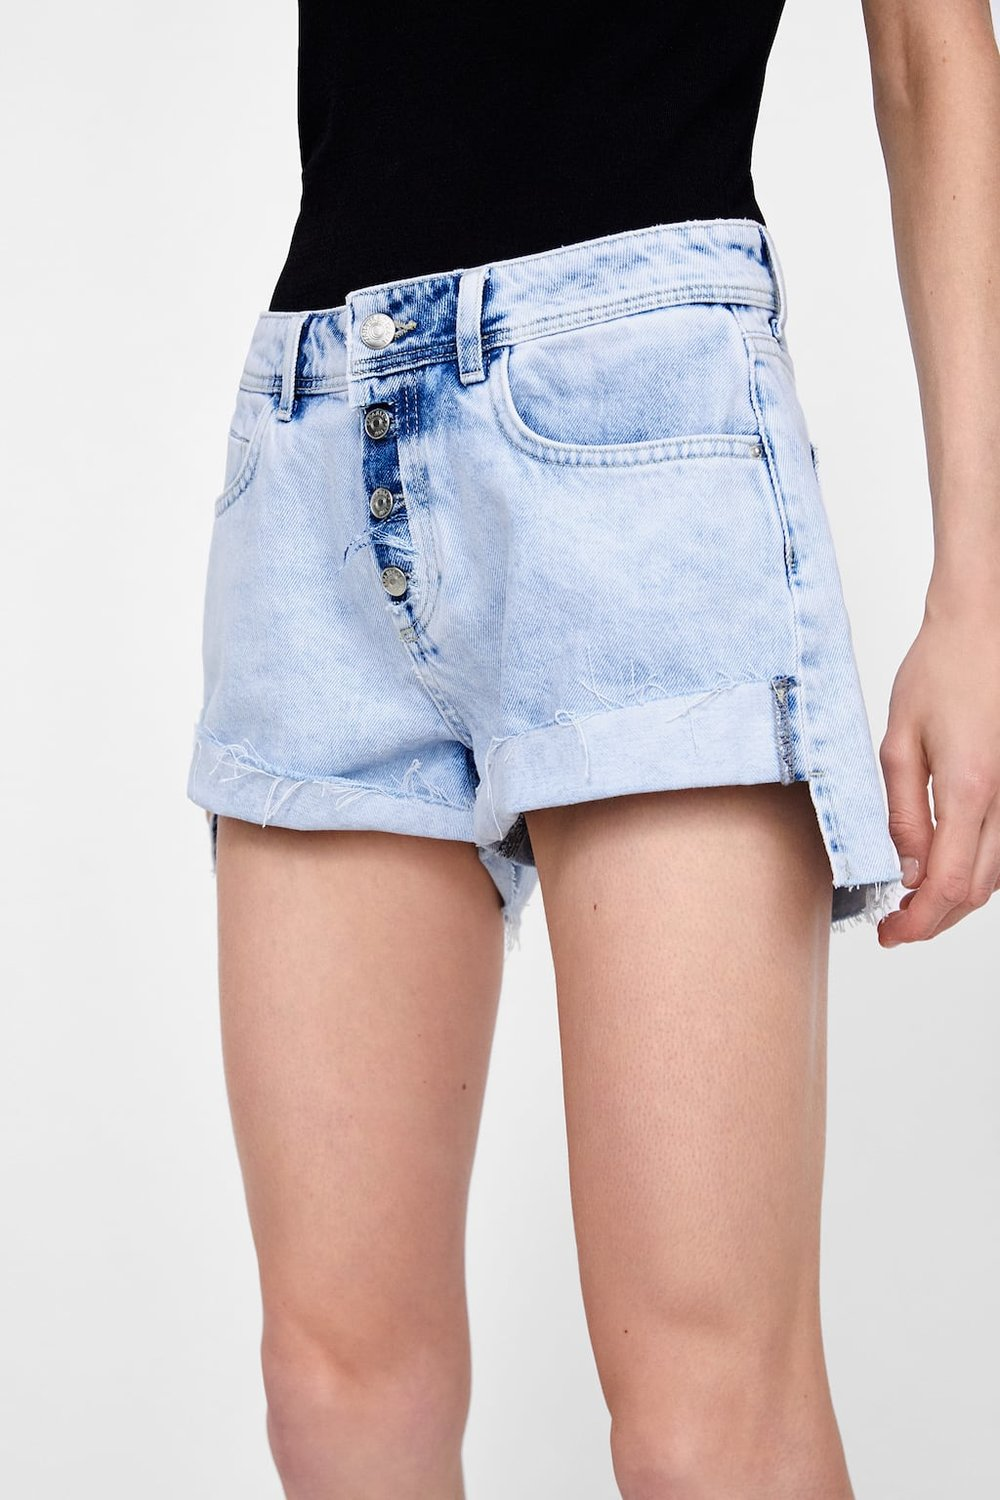 https://www.zara.com/ca/en/high-waisted-bleached-shorts-z1975-p06164154.html?v1=6452575&v2=1074835